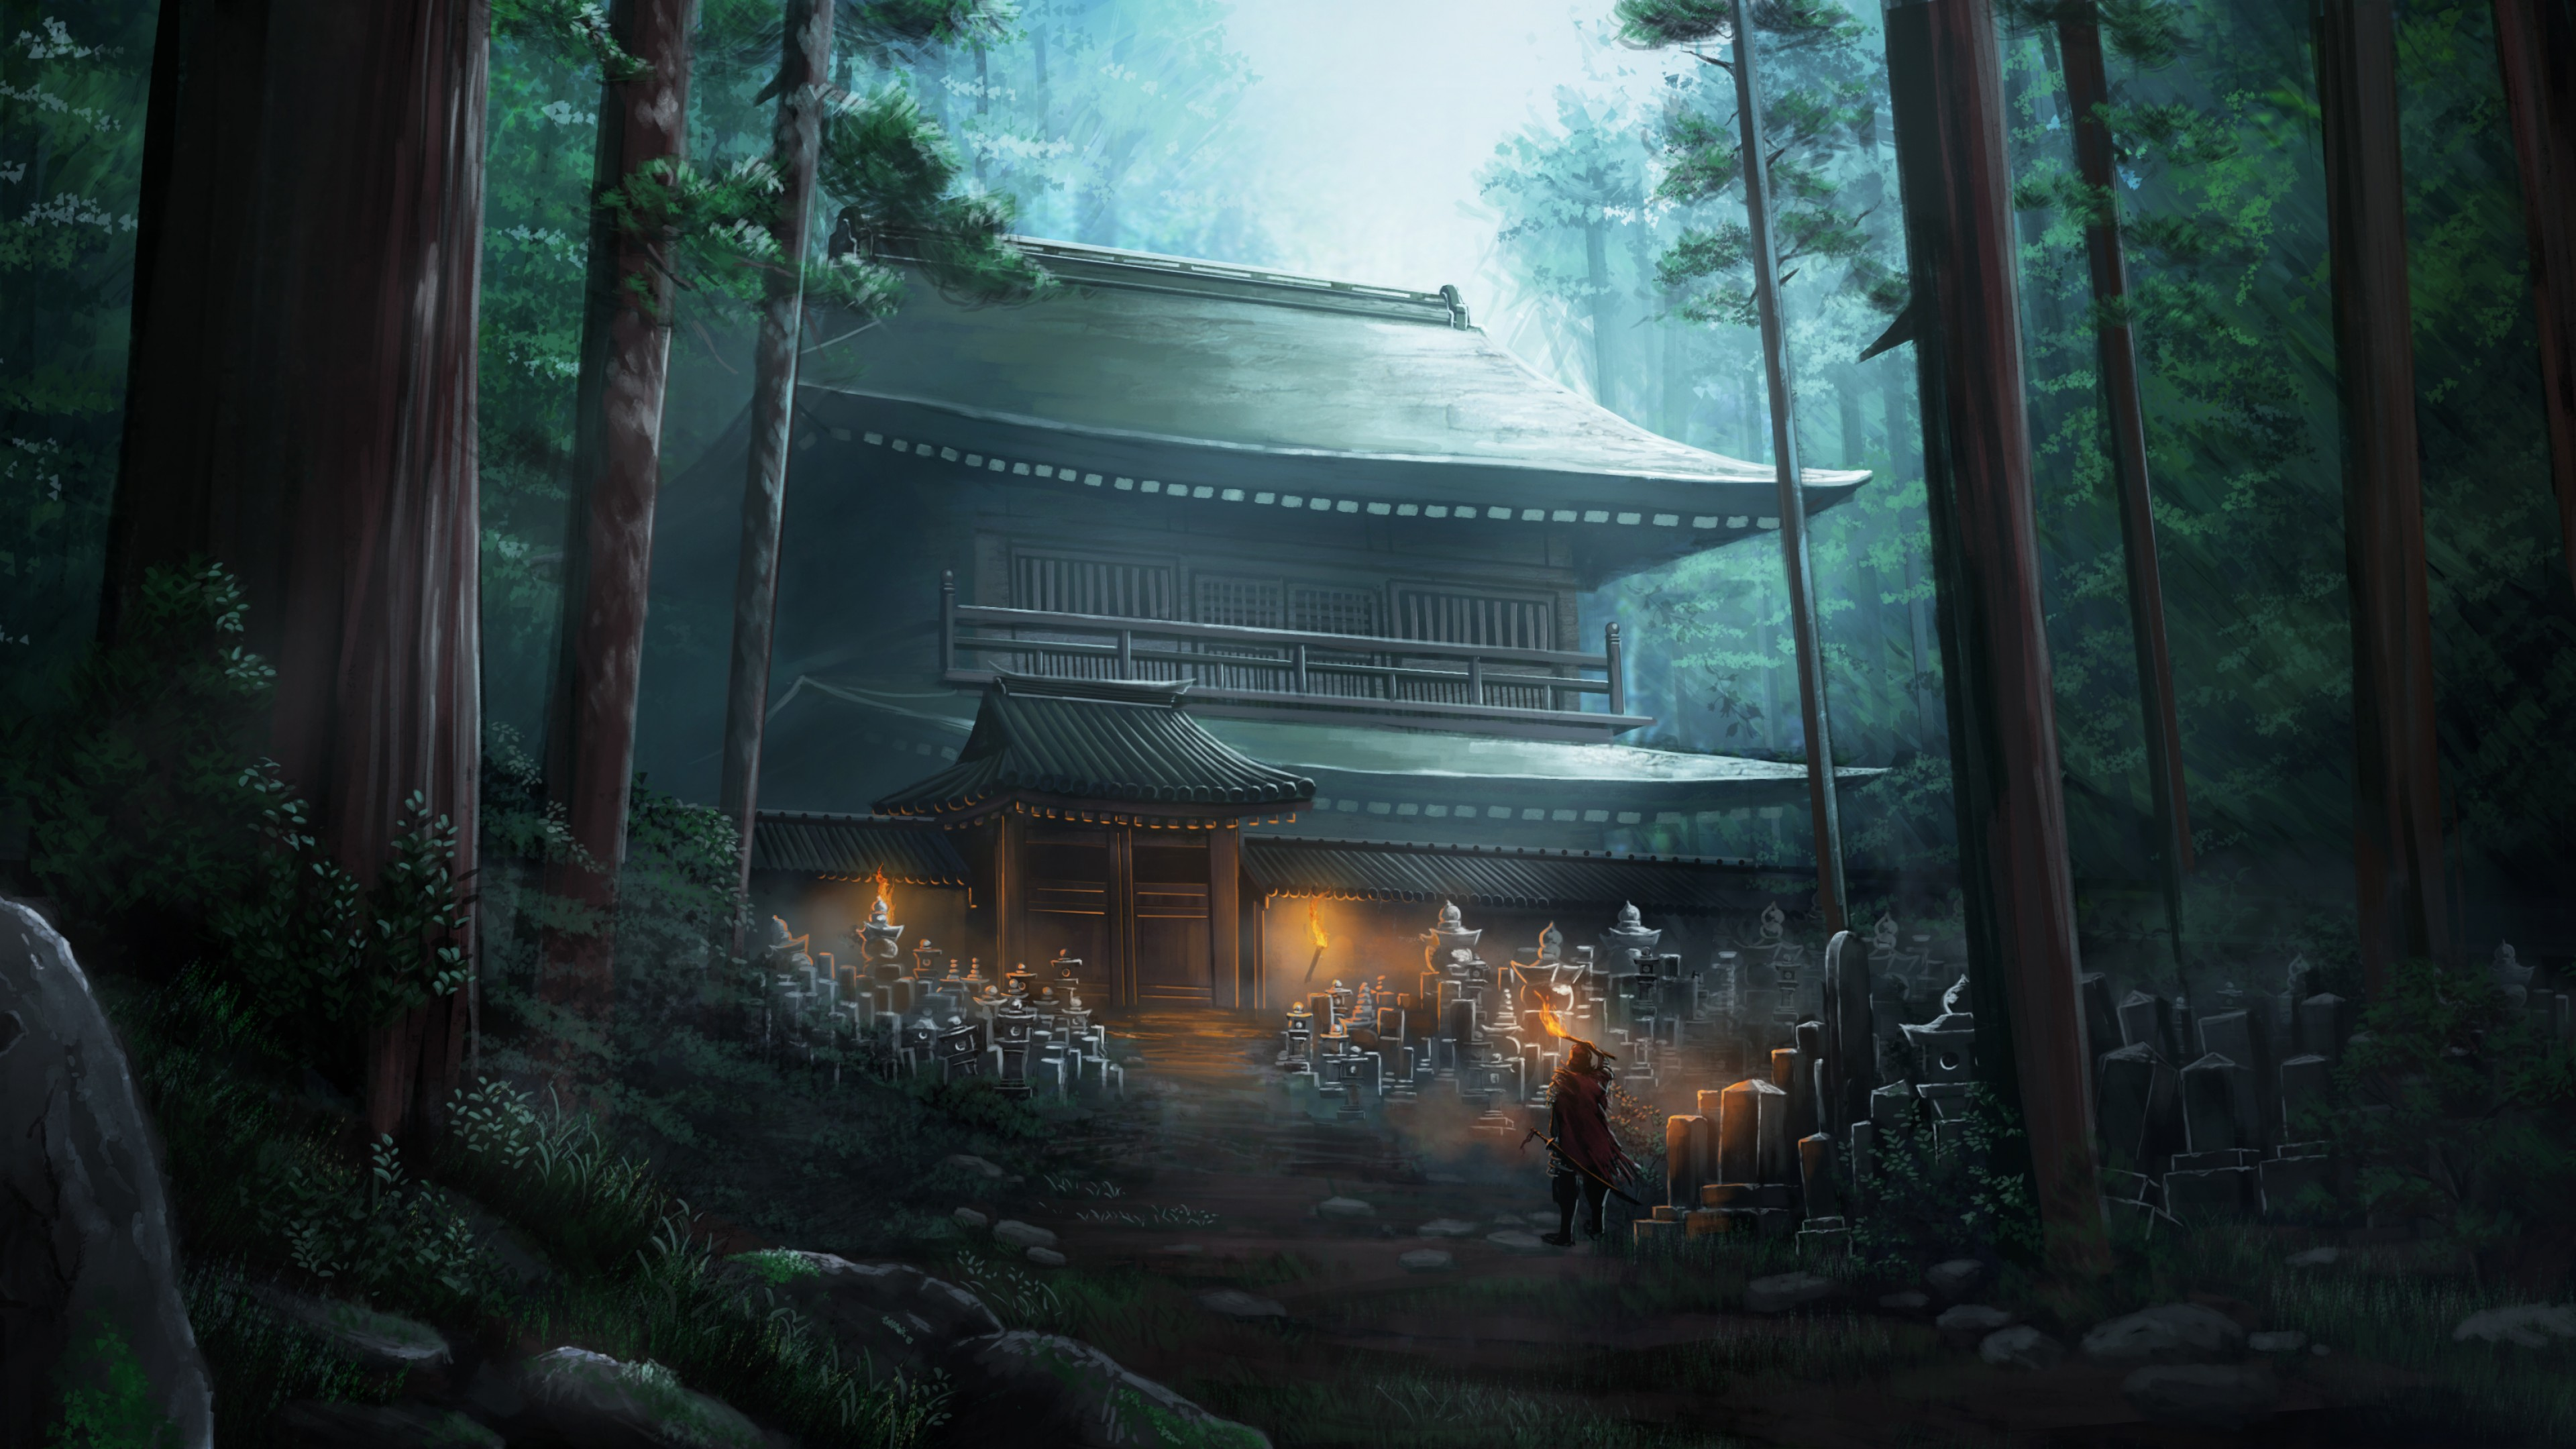 General 3840x2160 digital art soldier temple nature forest warrior fantasy art Asian Chinese architecture